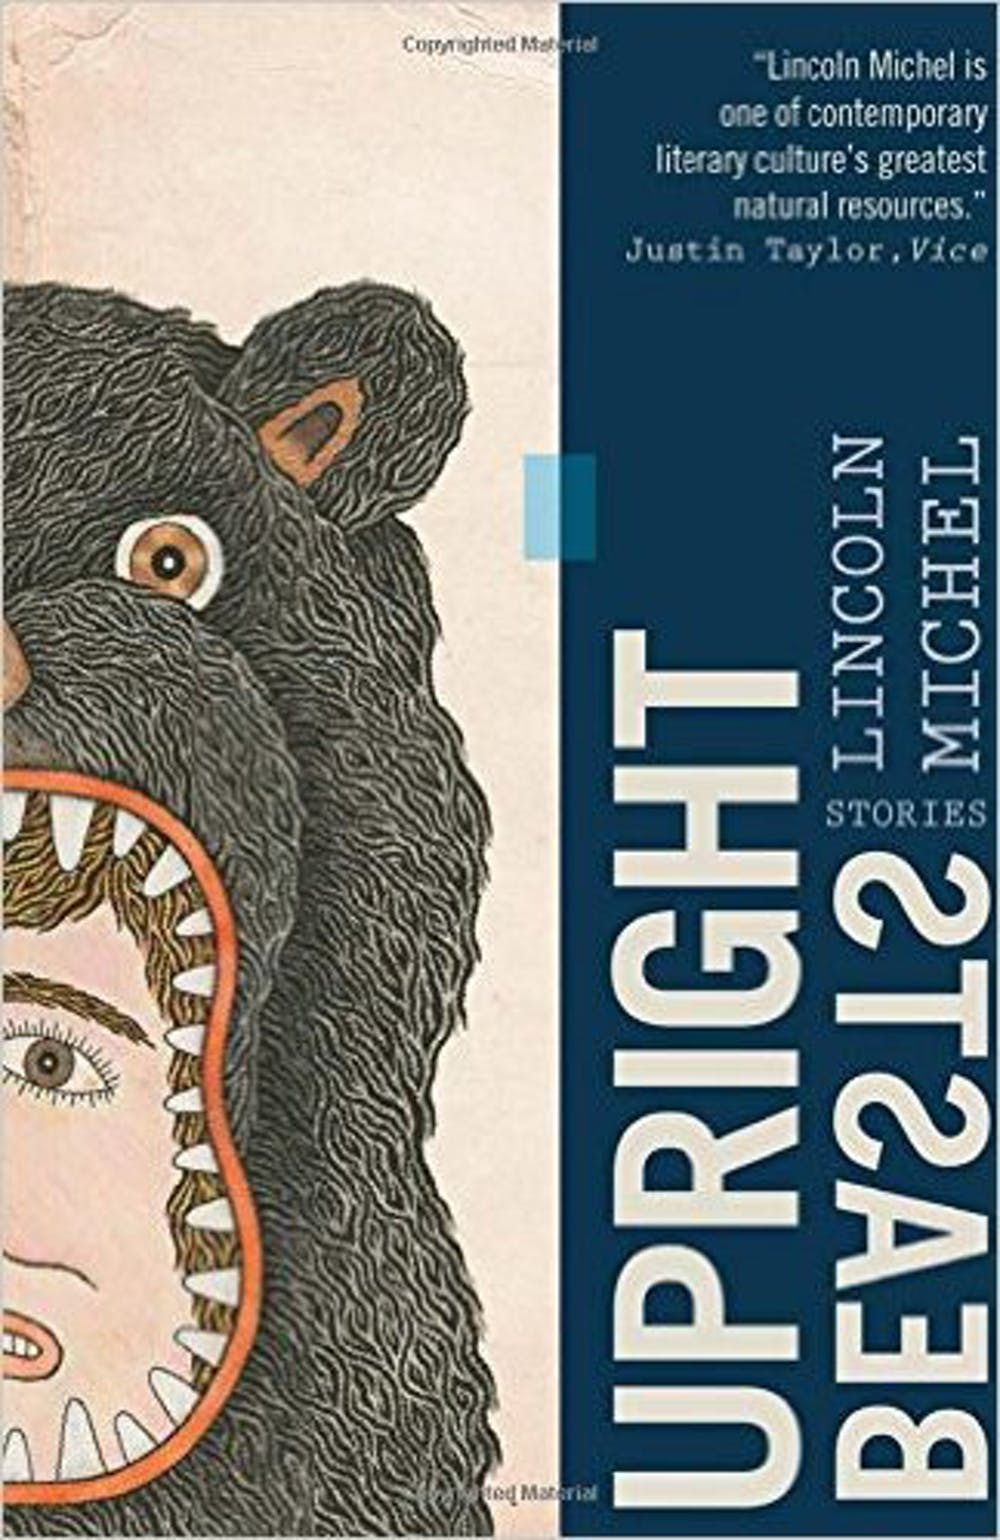 <p>Michel's latest work presents a collection of whimsical short stories.</p>